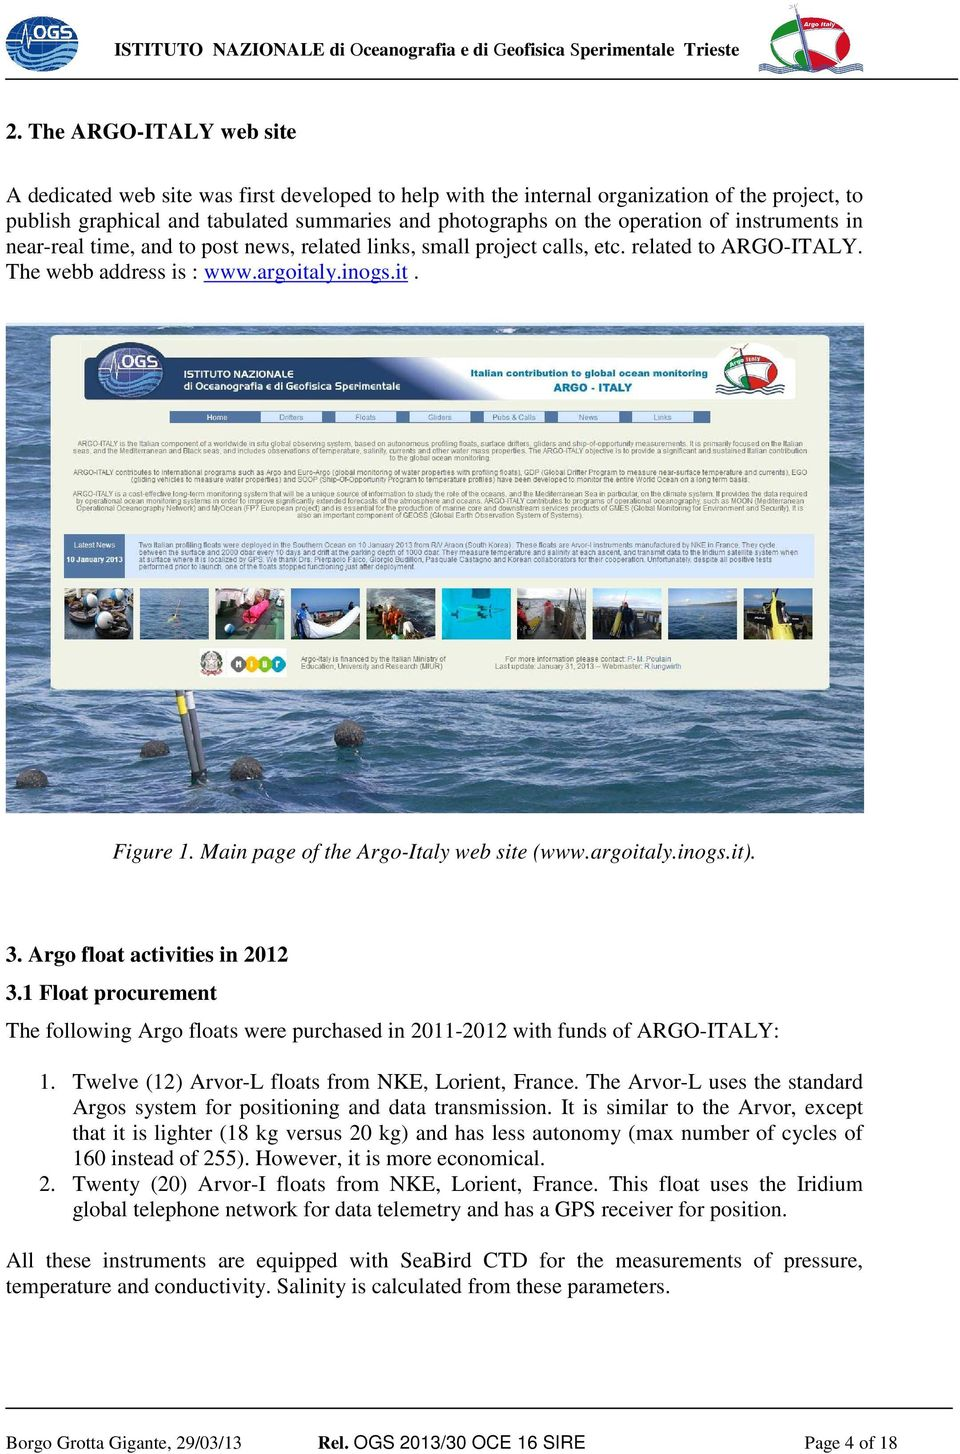 Main page of the Argo-Italy web site (www.argoitaly.inogs.it). 3. Argo float activities in 2012 3.1 Float procurement The following Argo floats were purchased in 2011-2012 with funds of ARGO-ITALY: 1.